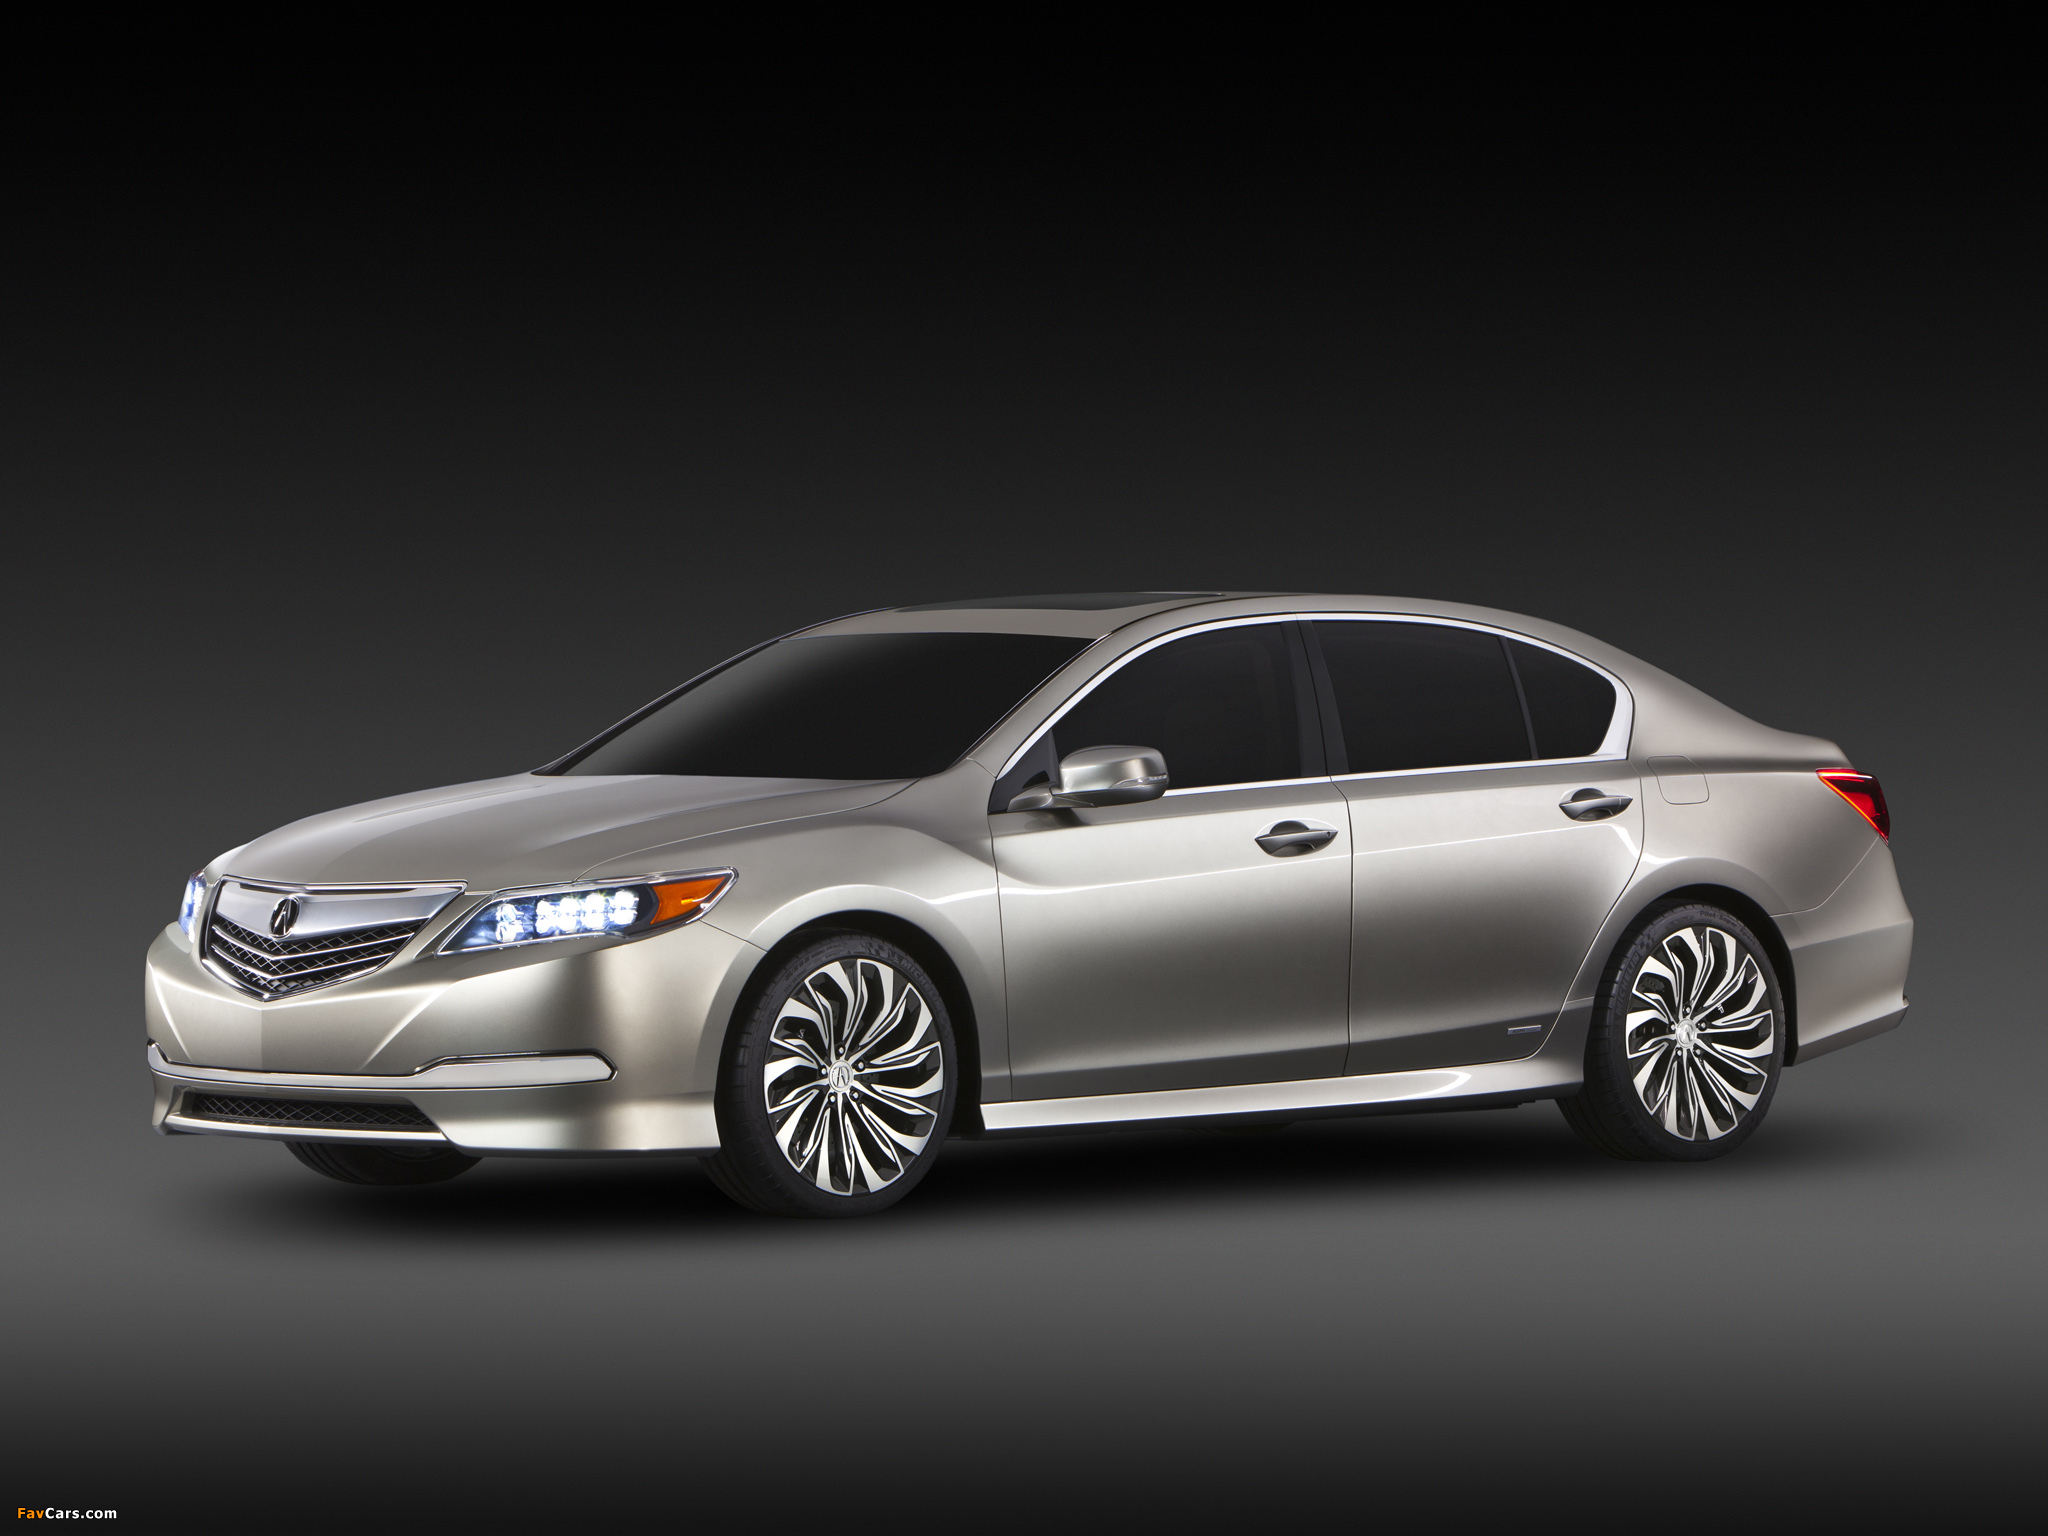 Acura RLX Concept (2012) wallpapers (2048 x 1536)